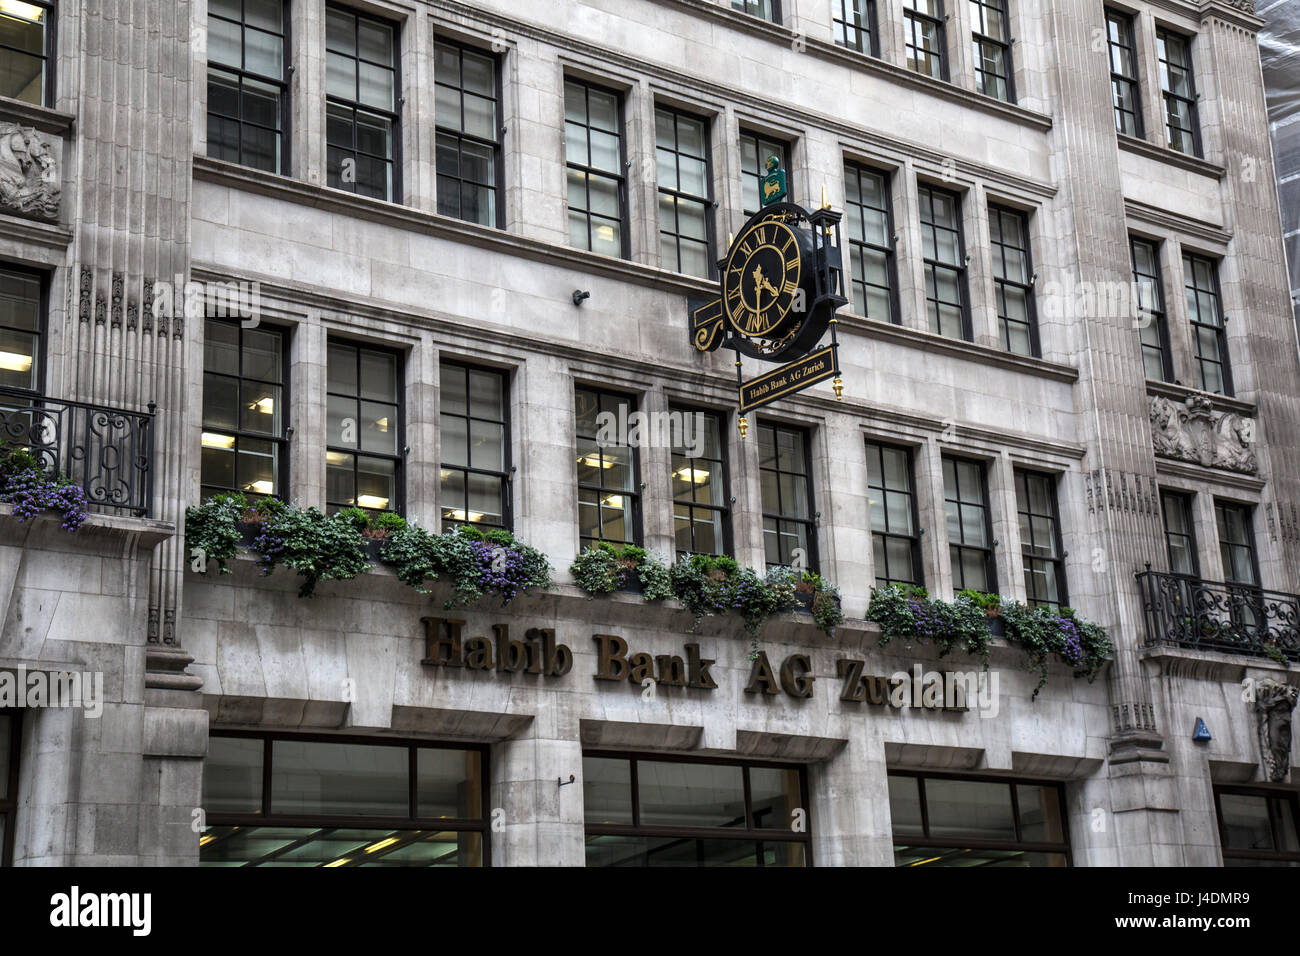 Habib Bank AG Zurich, 42 Moorgate, London. - Stock Image